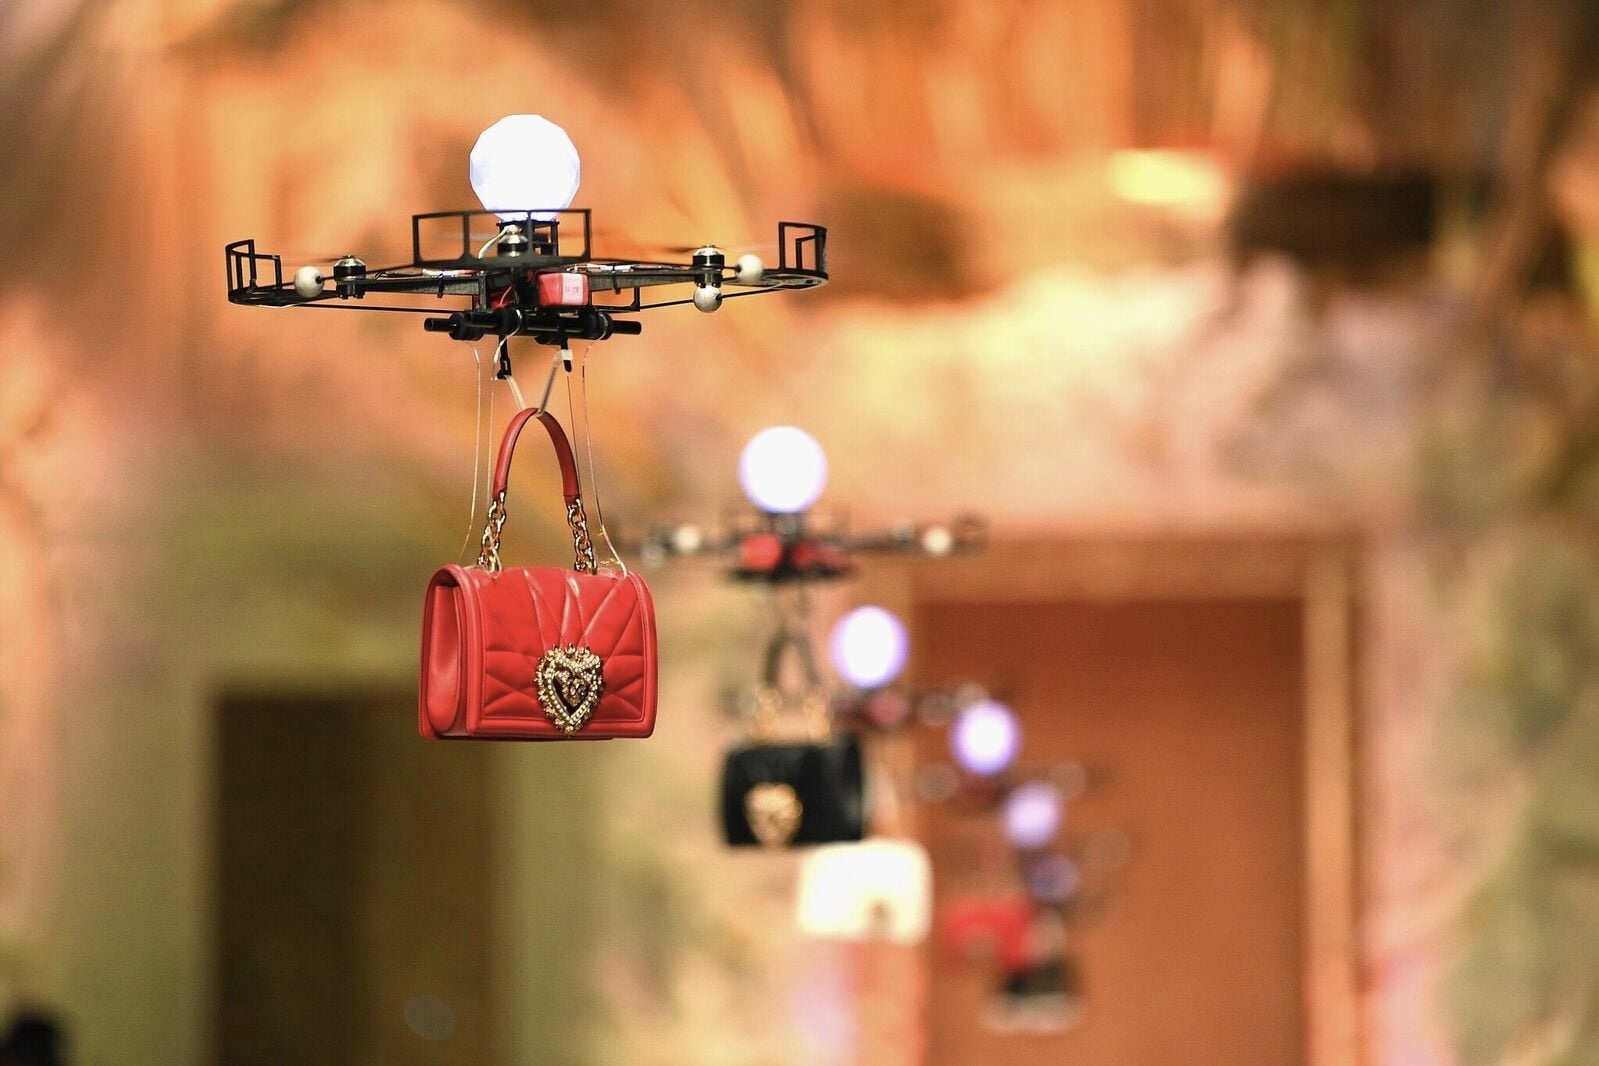 Video: Drones Carry Expensive Dolce & Gabbana Handbags On The Runway 1